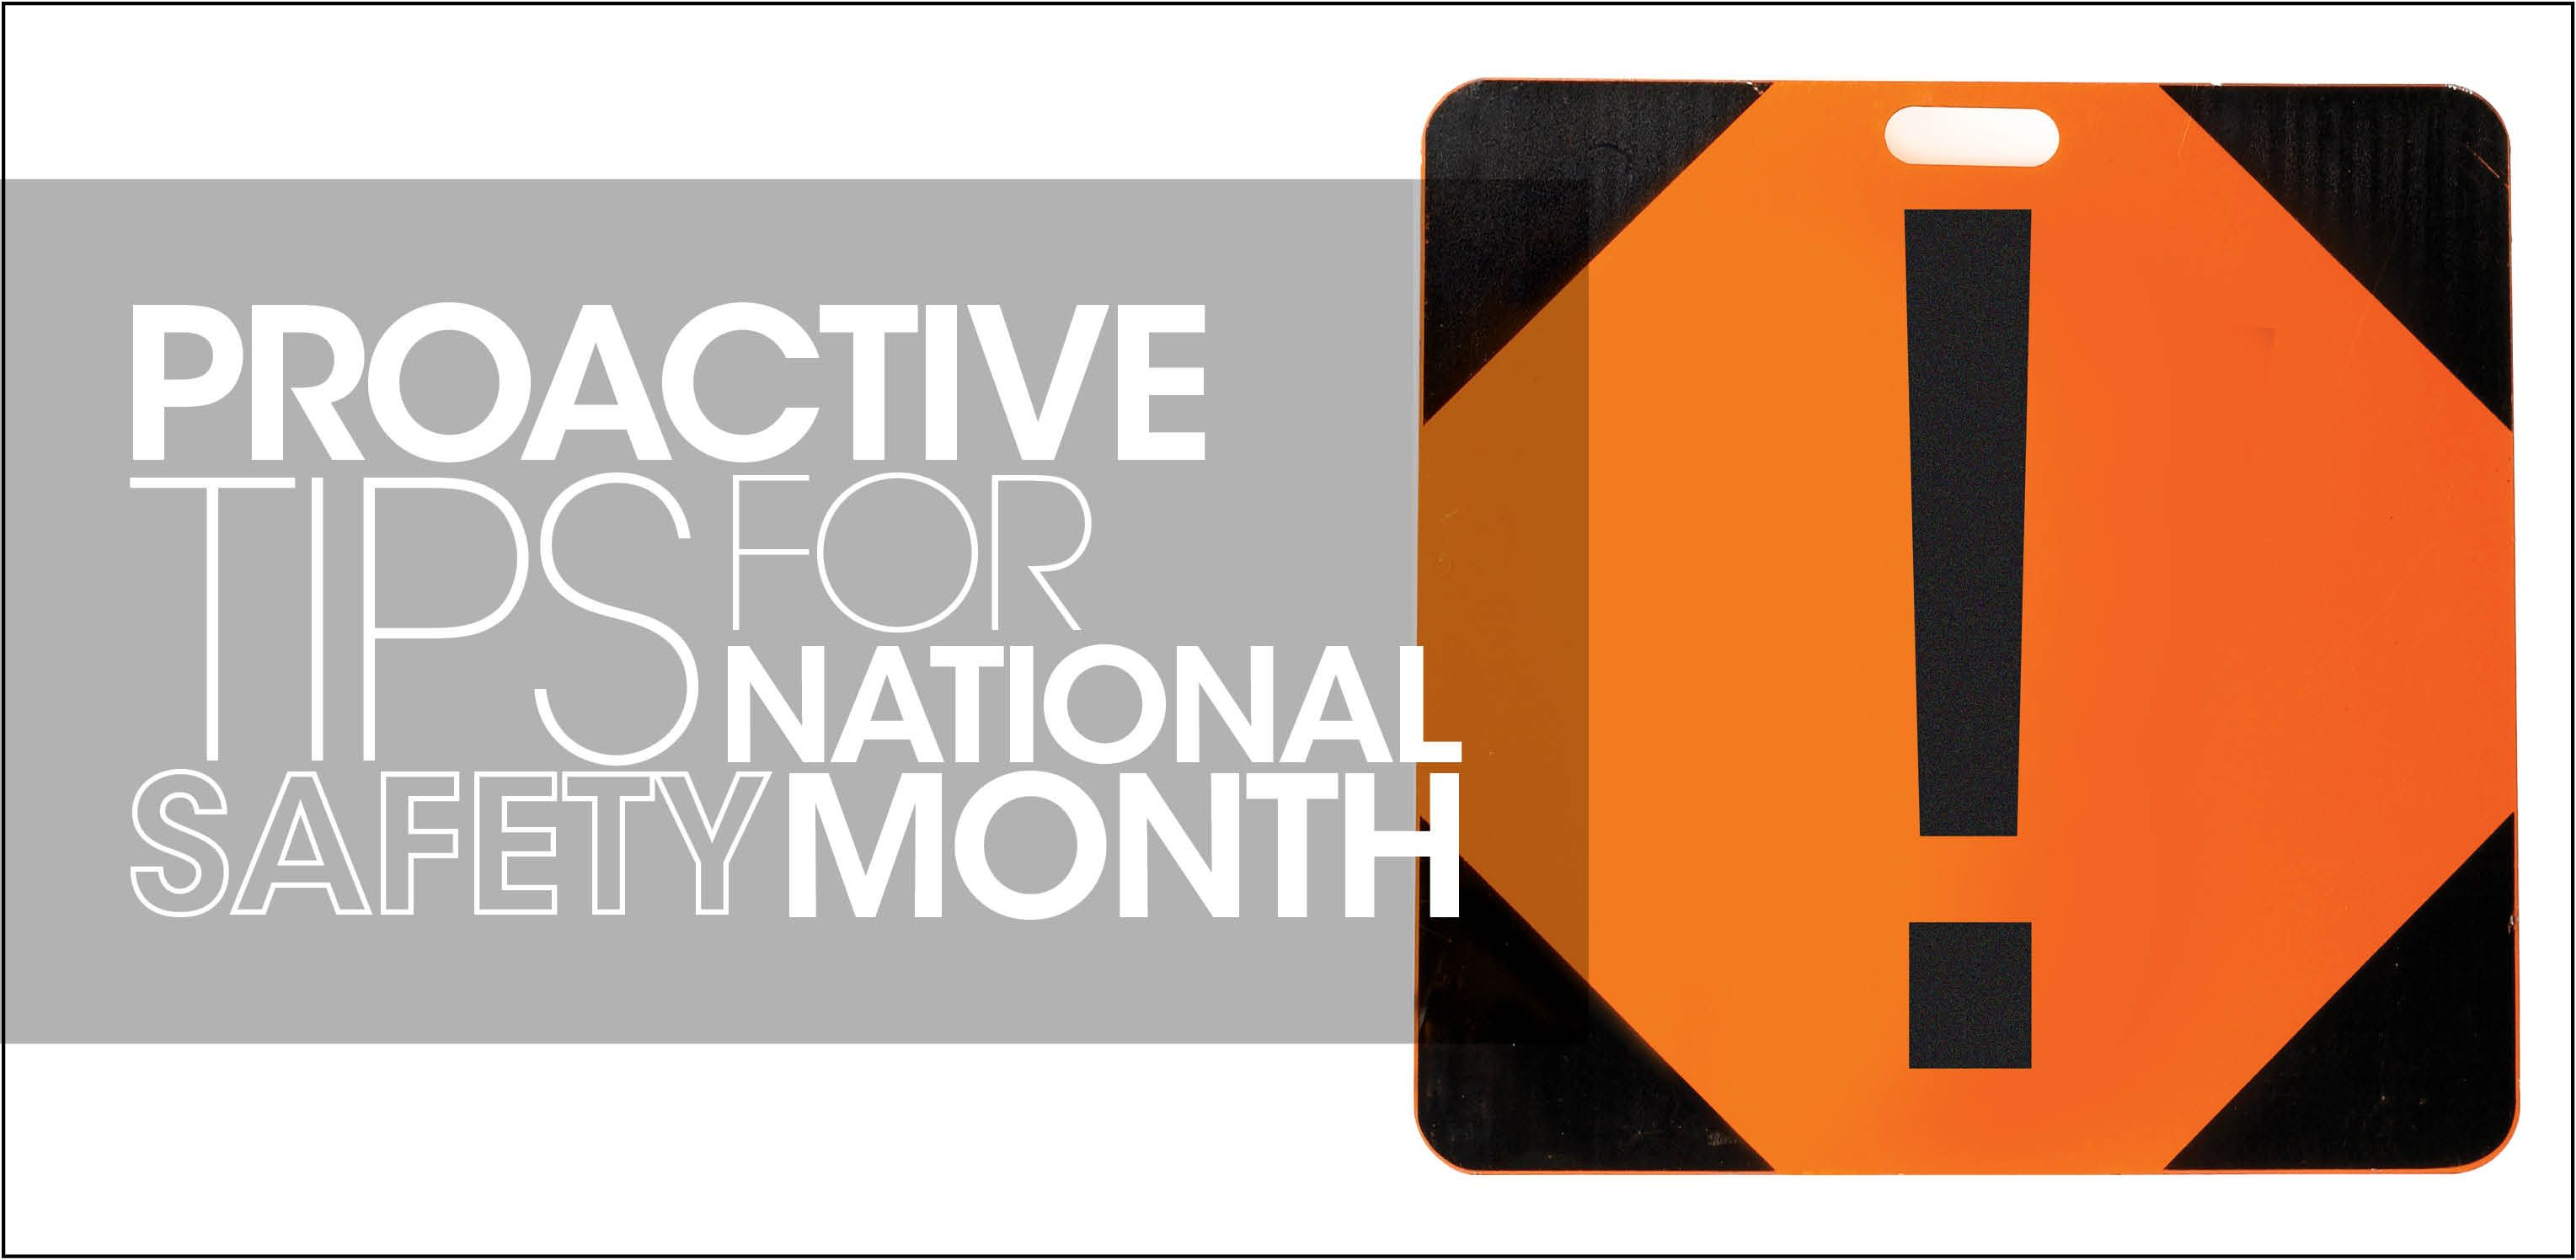 June is designated as National Safety Month and is a time